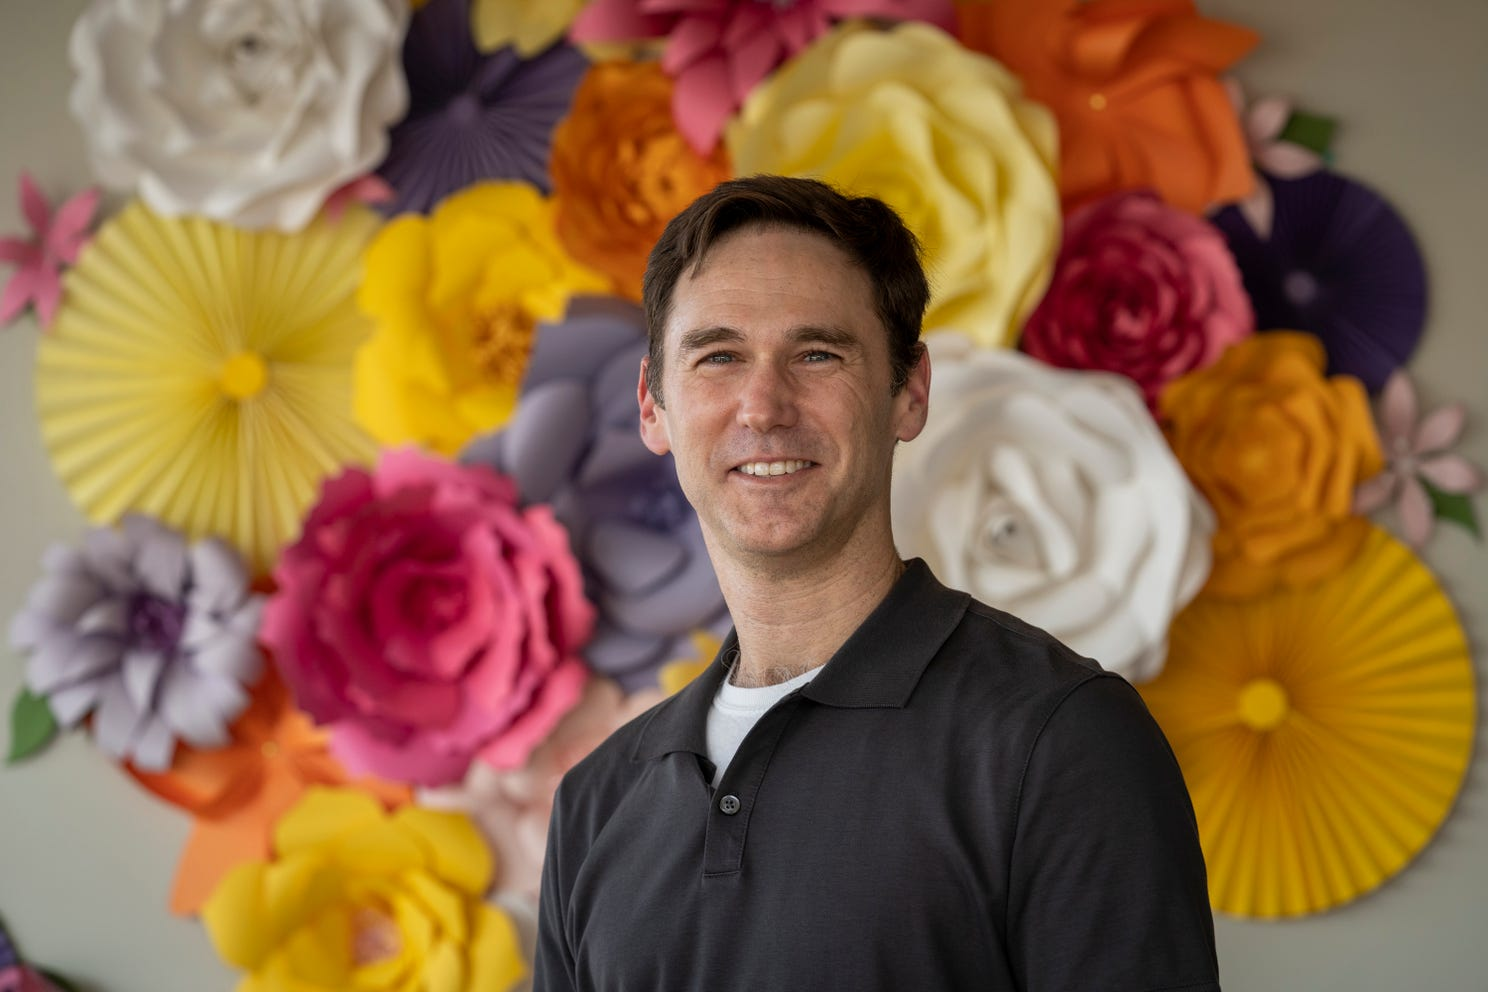 Dr. Josh Septimus, a doctor at Houston Methodist Primary Care Group, stands for a portrait in the Dandelion Cafe. Septimus says of the Hospital's COVID-19 vaccine mandate for employees,